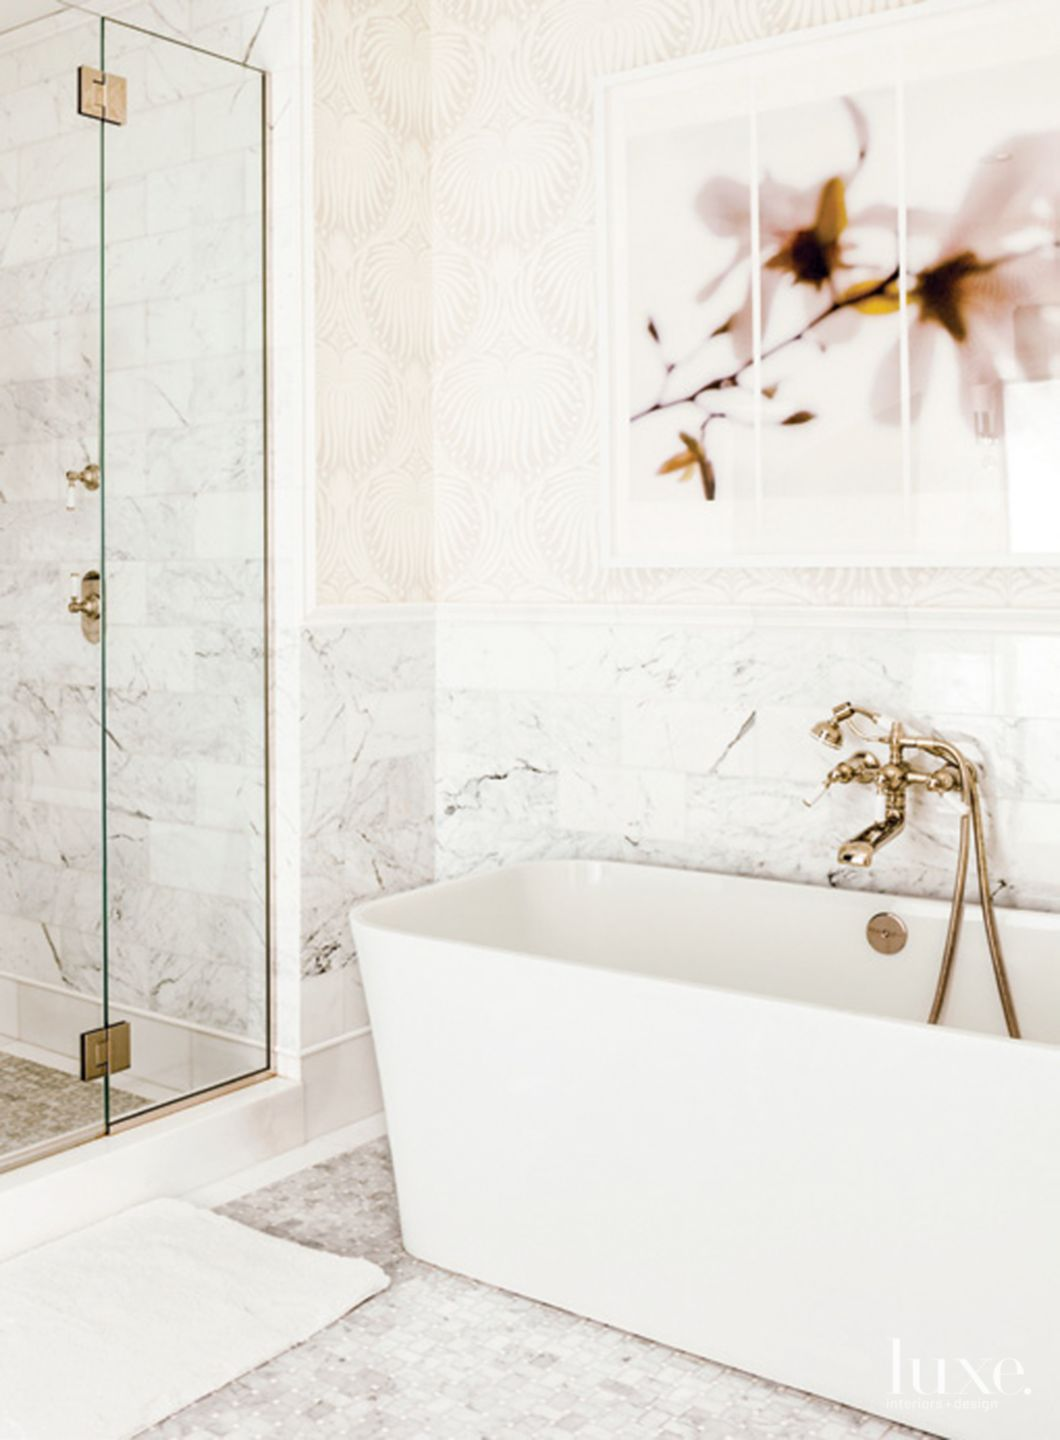 Contemporary White Bathroom with Patterned Wallpaper